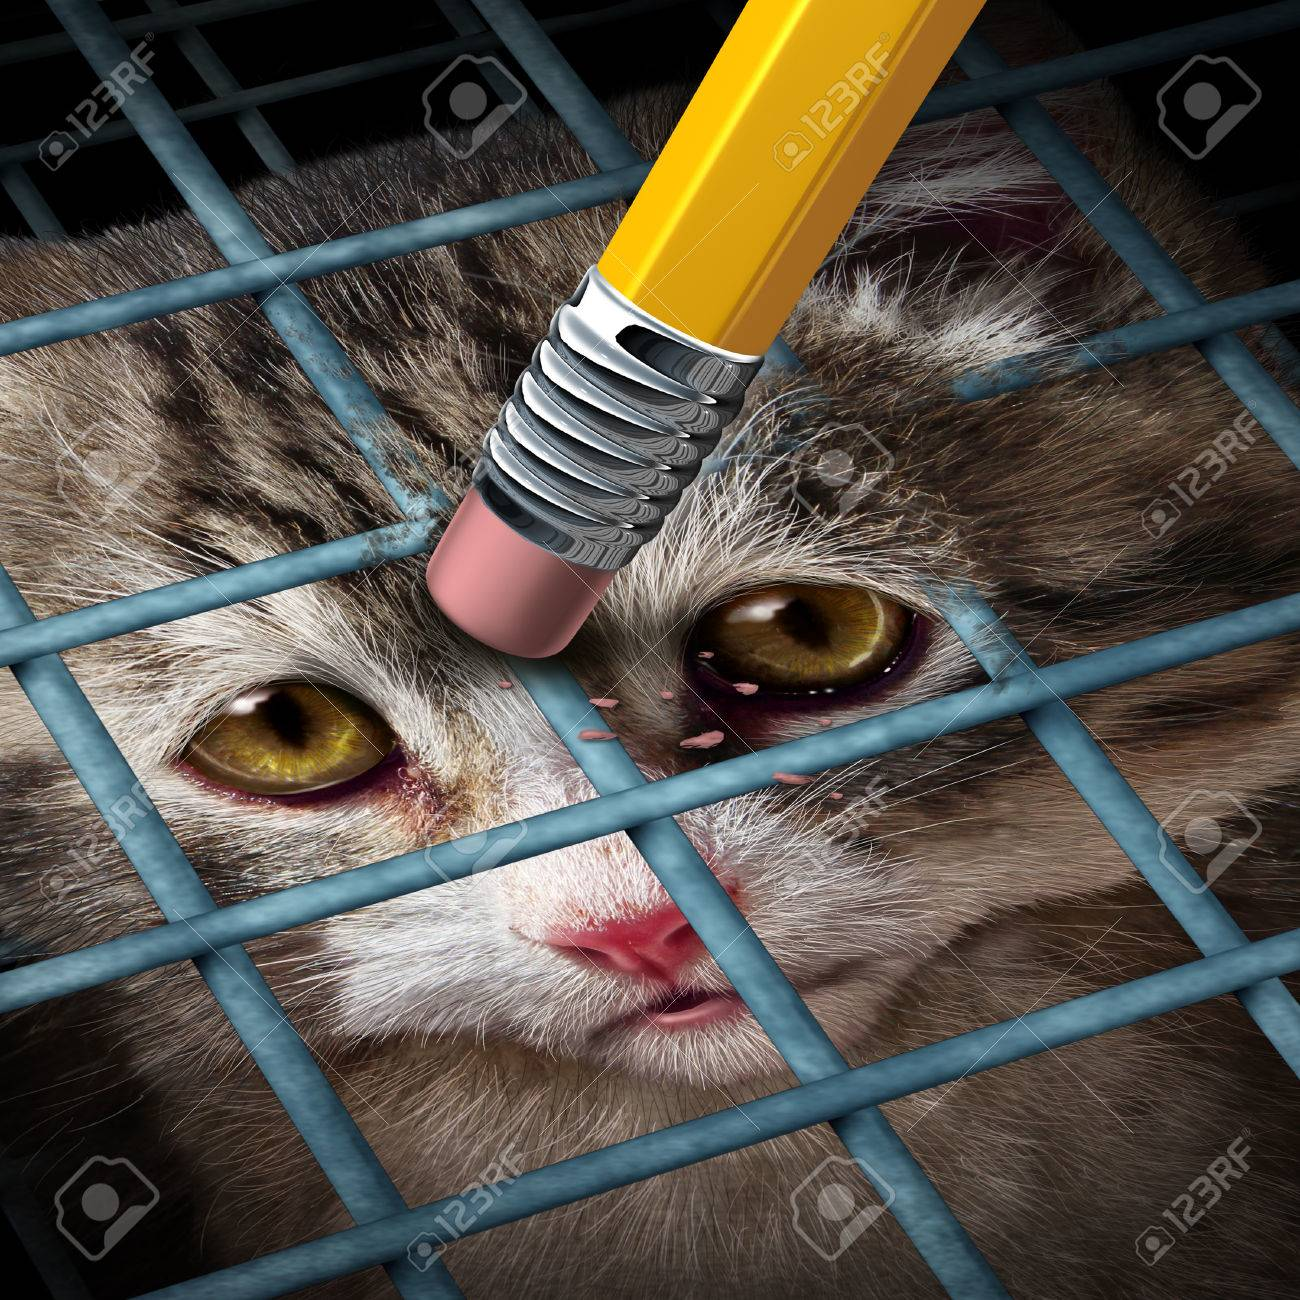 Animal adoption concept and rights as a kitten behind a cage being erased by a yellow pencil eraser as a hope metaphor for adopting pets from a shelter giving freedom to caged orphaned cats and dogs Stock Photo - 24703418